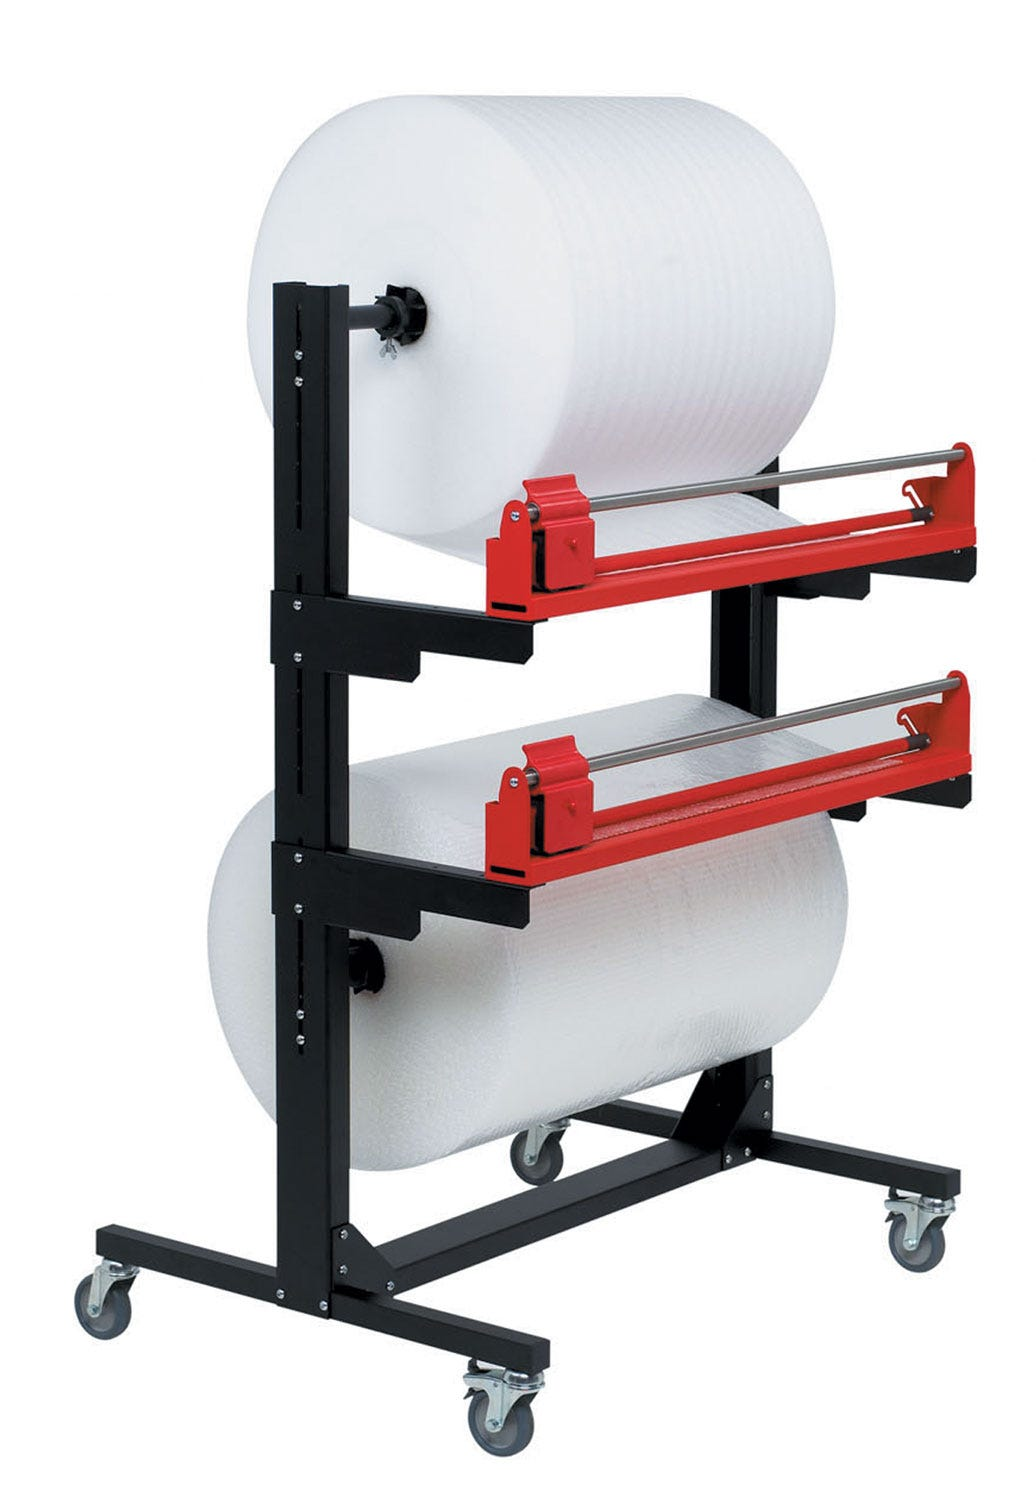 Pacplan® Dual 1200mm Mobile Roll Cutter Dispenser